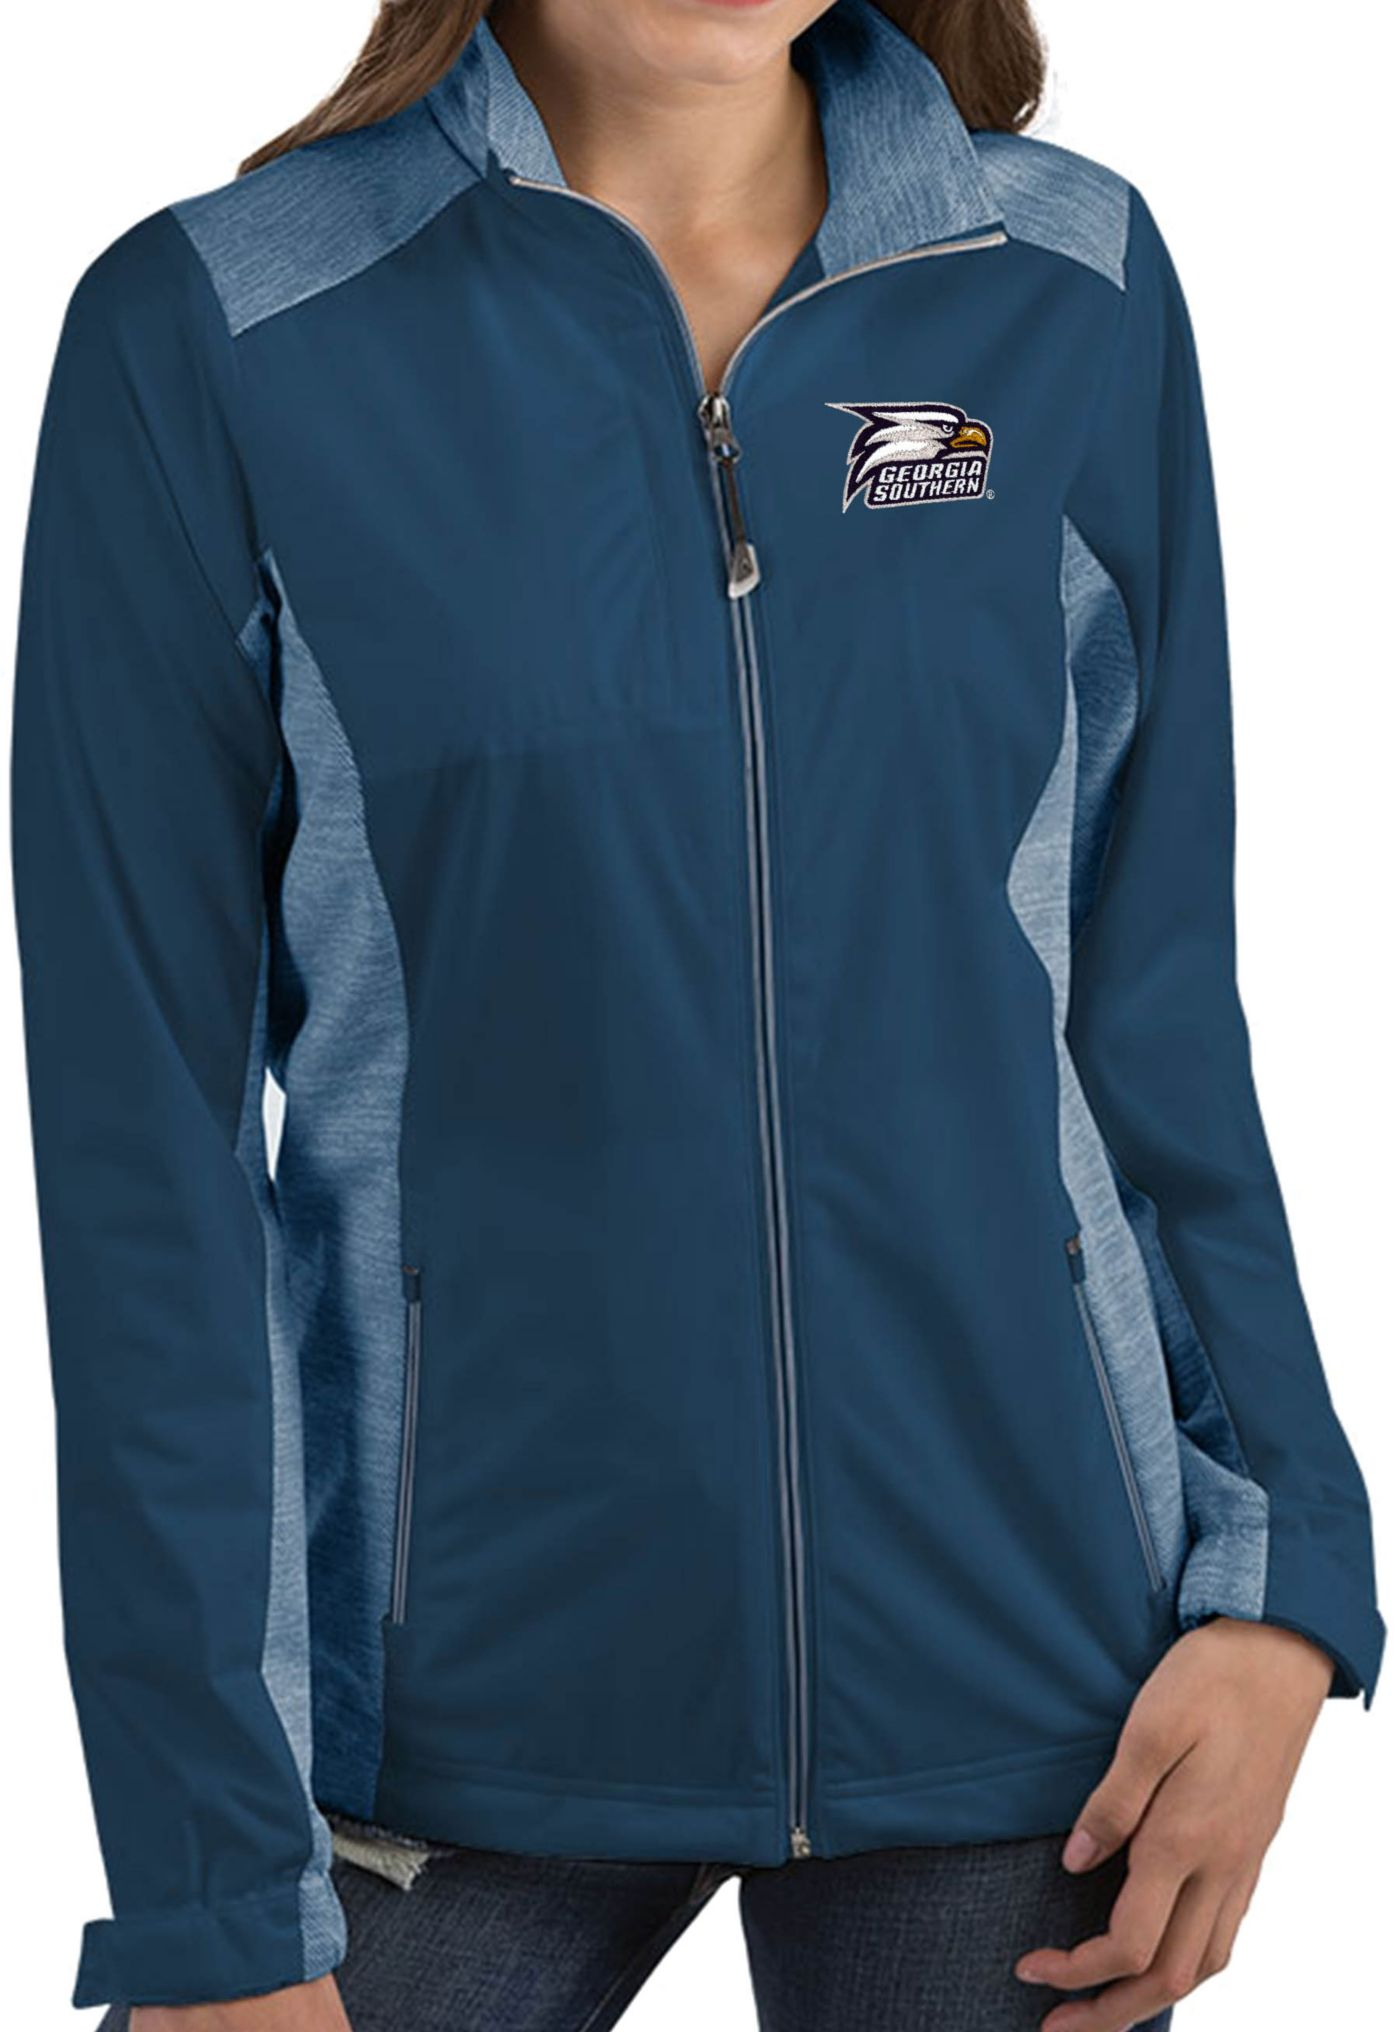 Antigua Women's Georgia Southern Eagles Navy  Revolve Full-Zip Jacket